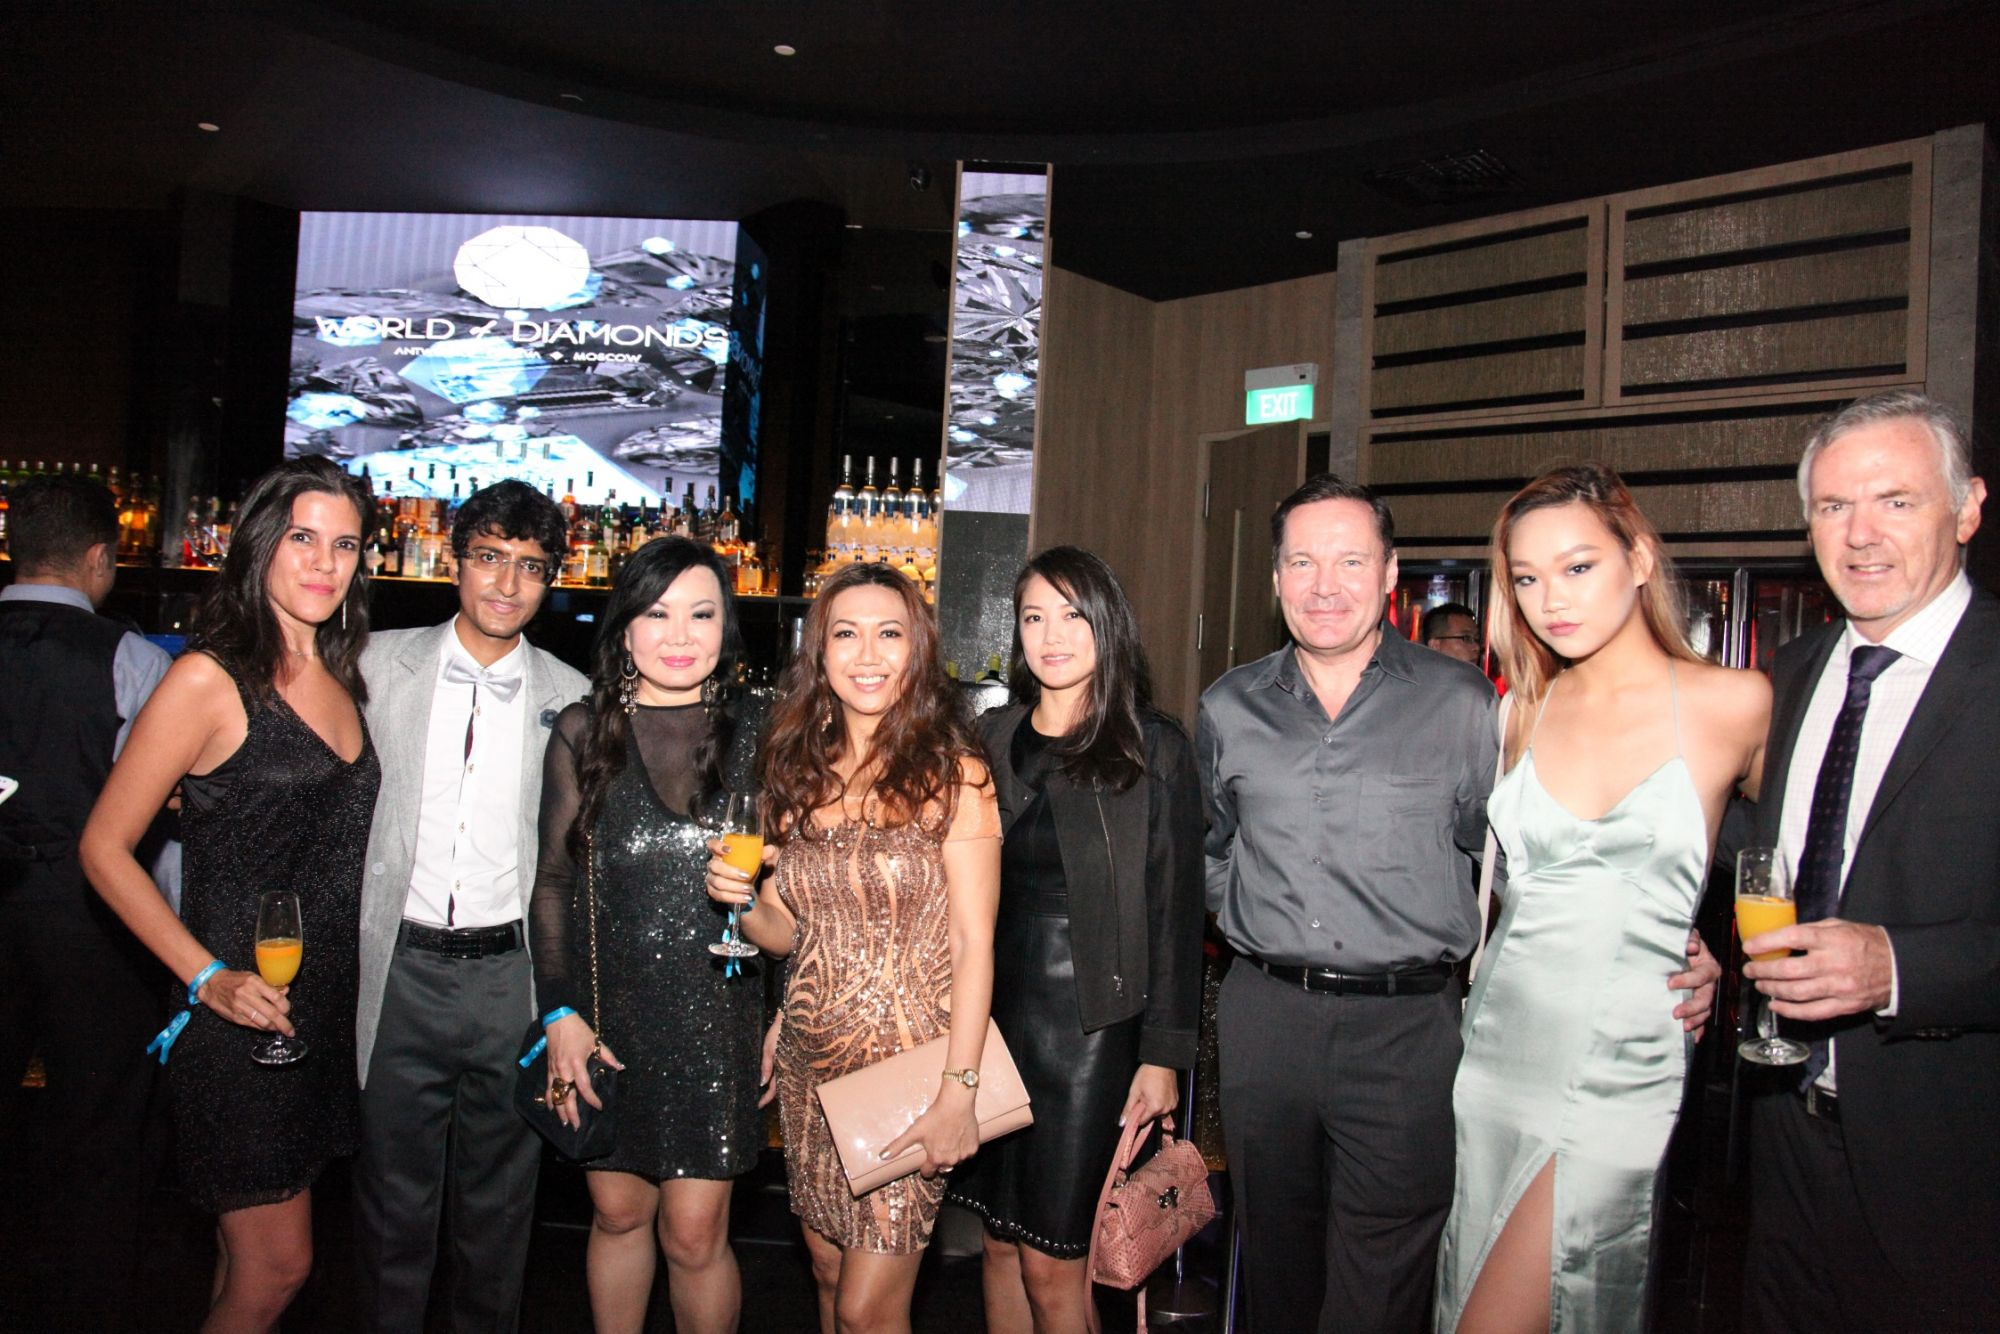 Carmen Benitez, Karan Tilani, Jennifer Green, Grace Duffy, Caroline Soh, Paul Cuthbert-Brown, Angelica Muk, David Hodge